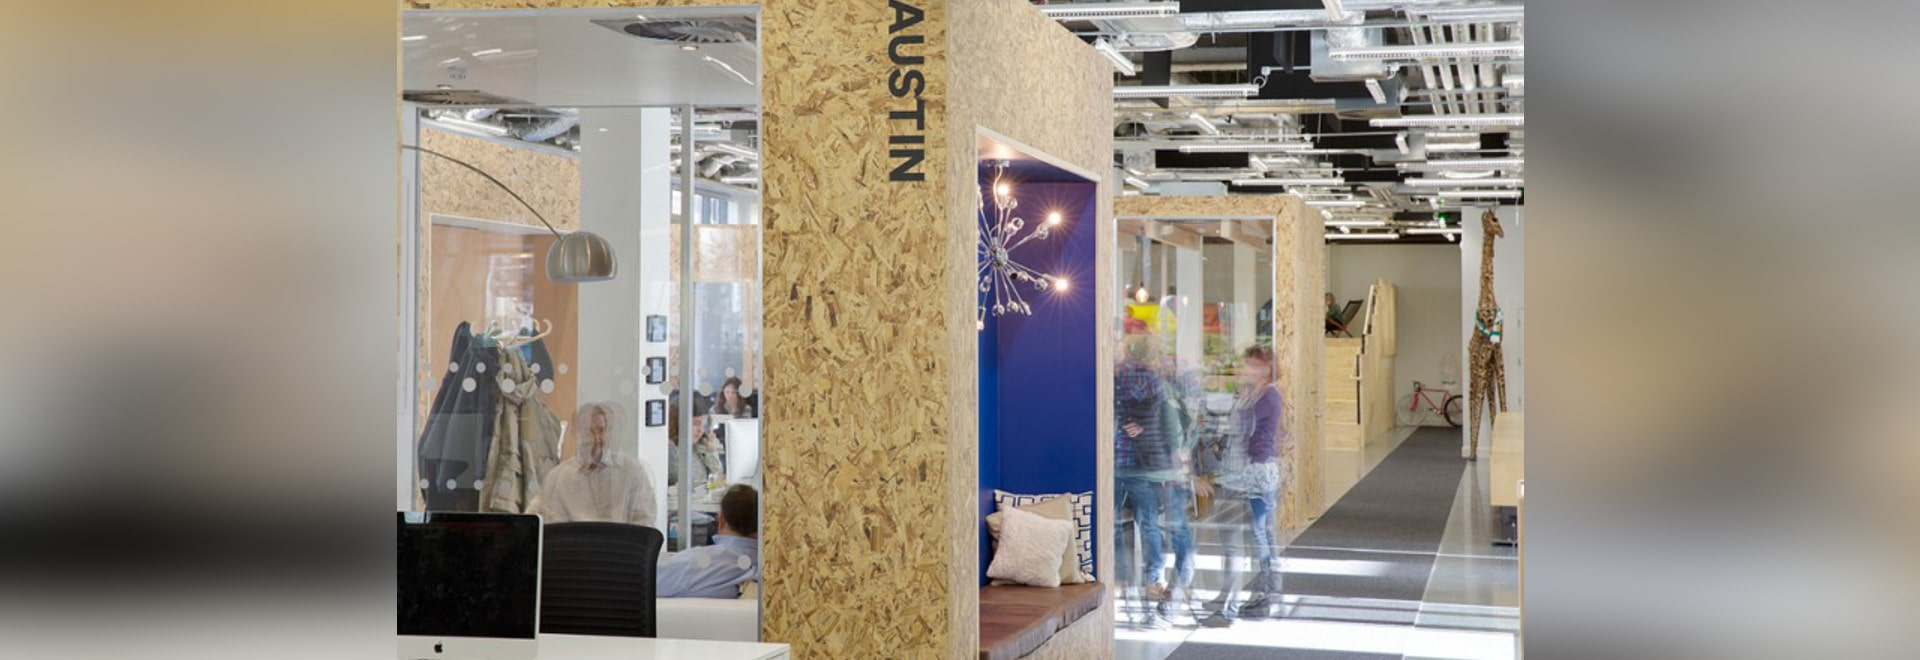 airbnb office. AIRBNB OFFICE IN DUBLIN BY HENEGHAN PENG Airbnb Office